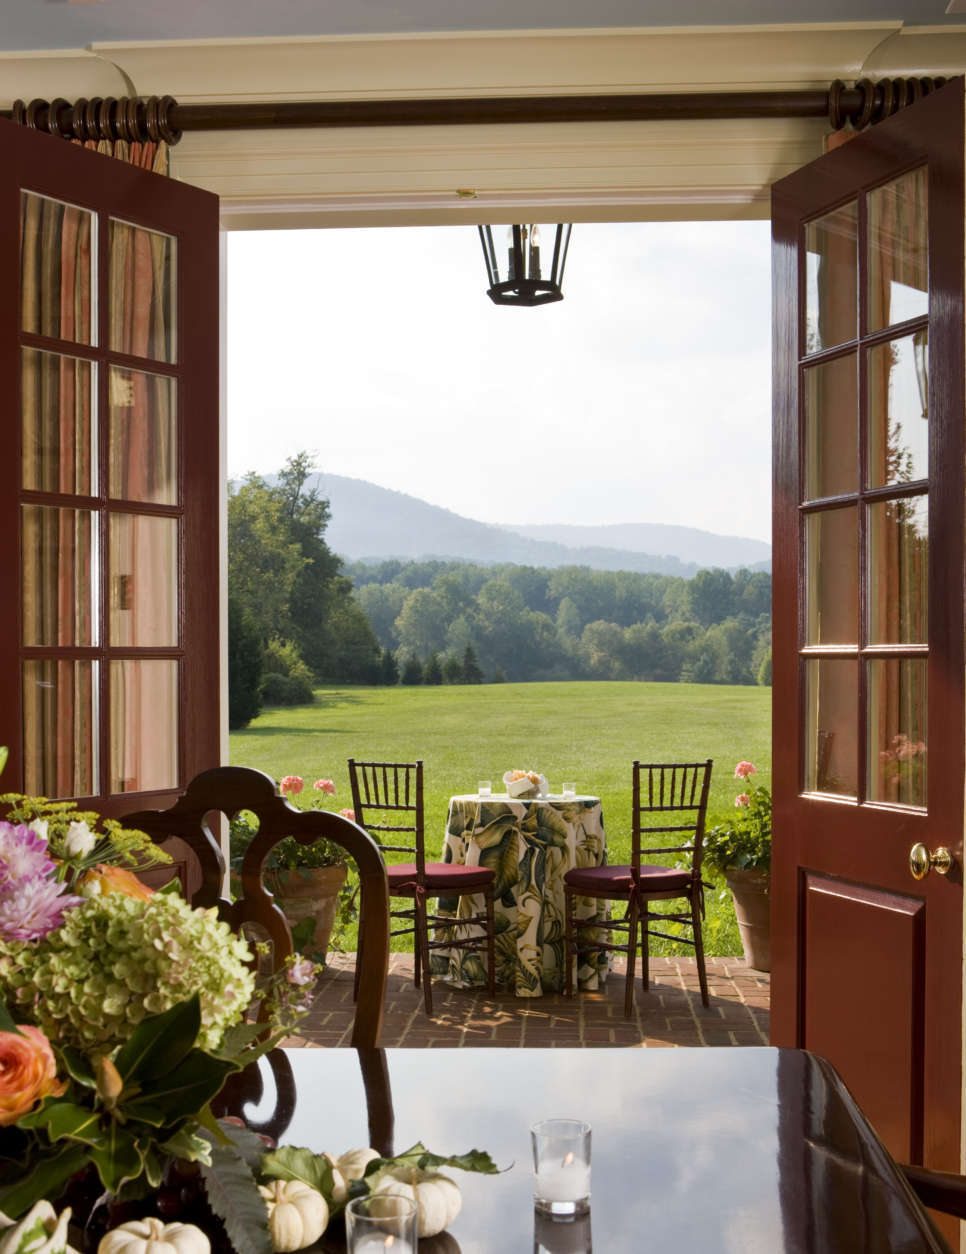 A view from the ballroom at The Inn at Little Washington, located about 70 miles outside of Washington, D.C. (Gordon Beall)